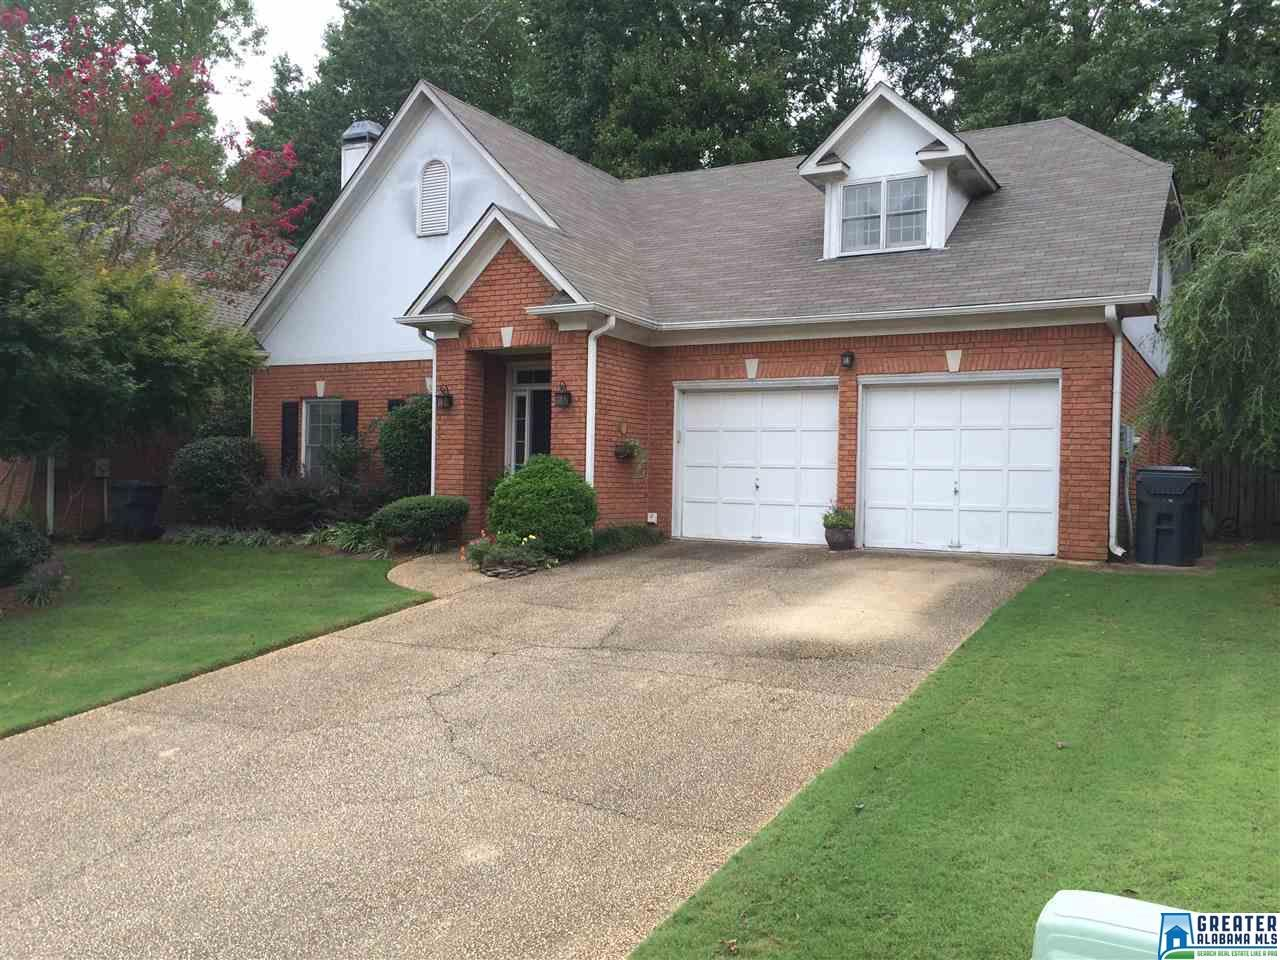 3884 Ripple Leaf Cir, Birmingham, AL